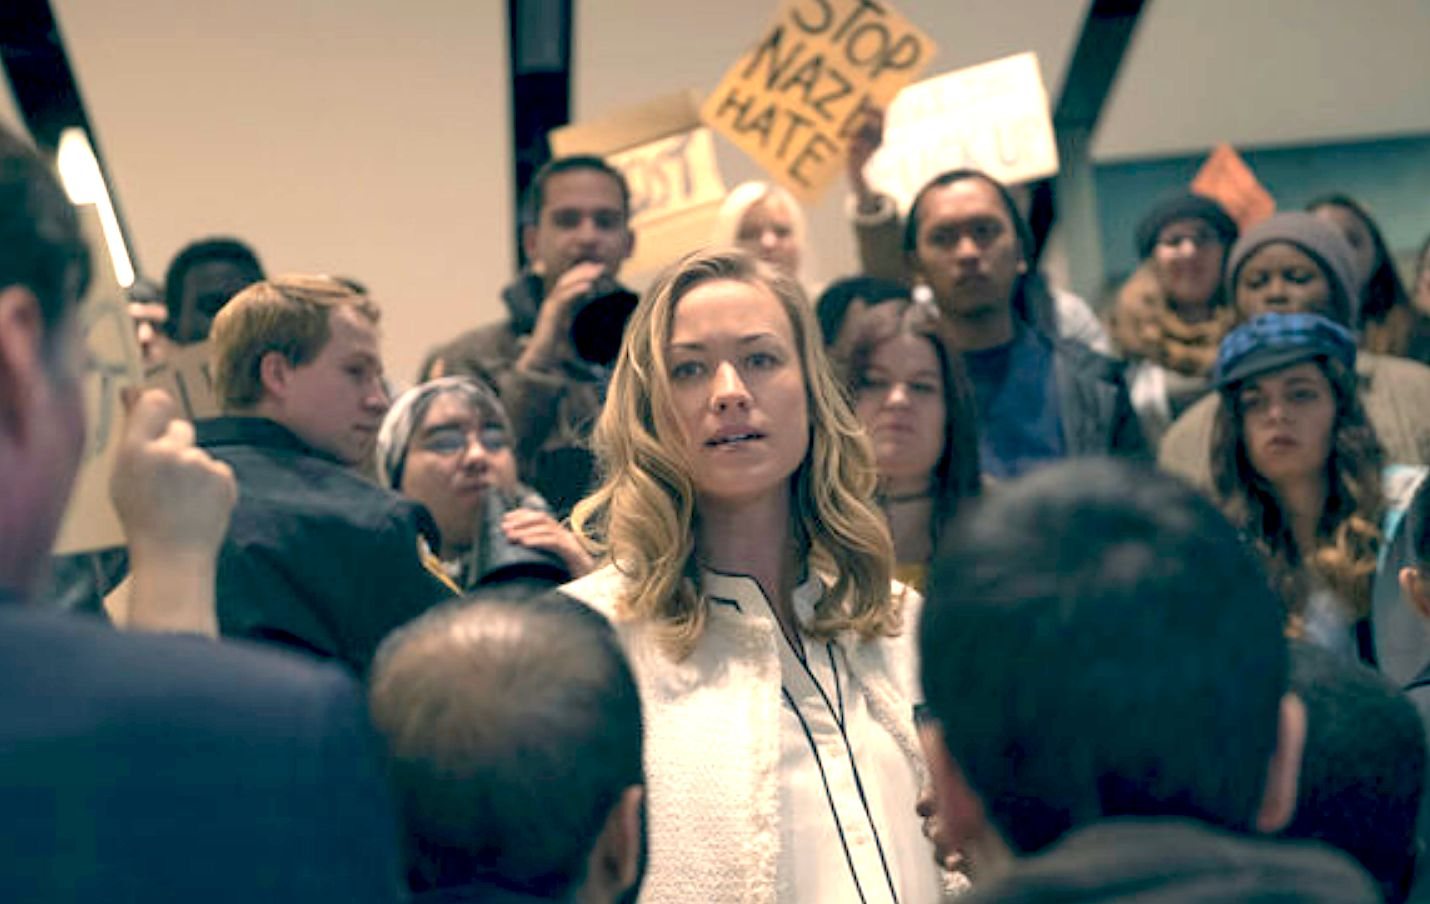 Serena Joy faces protesters in a Handmaids Tale flashback